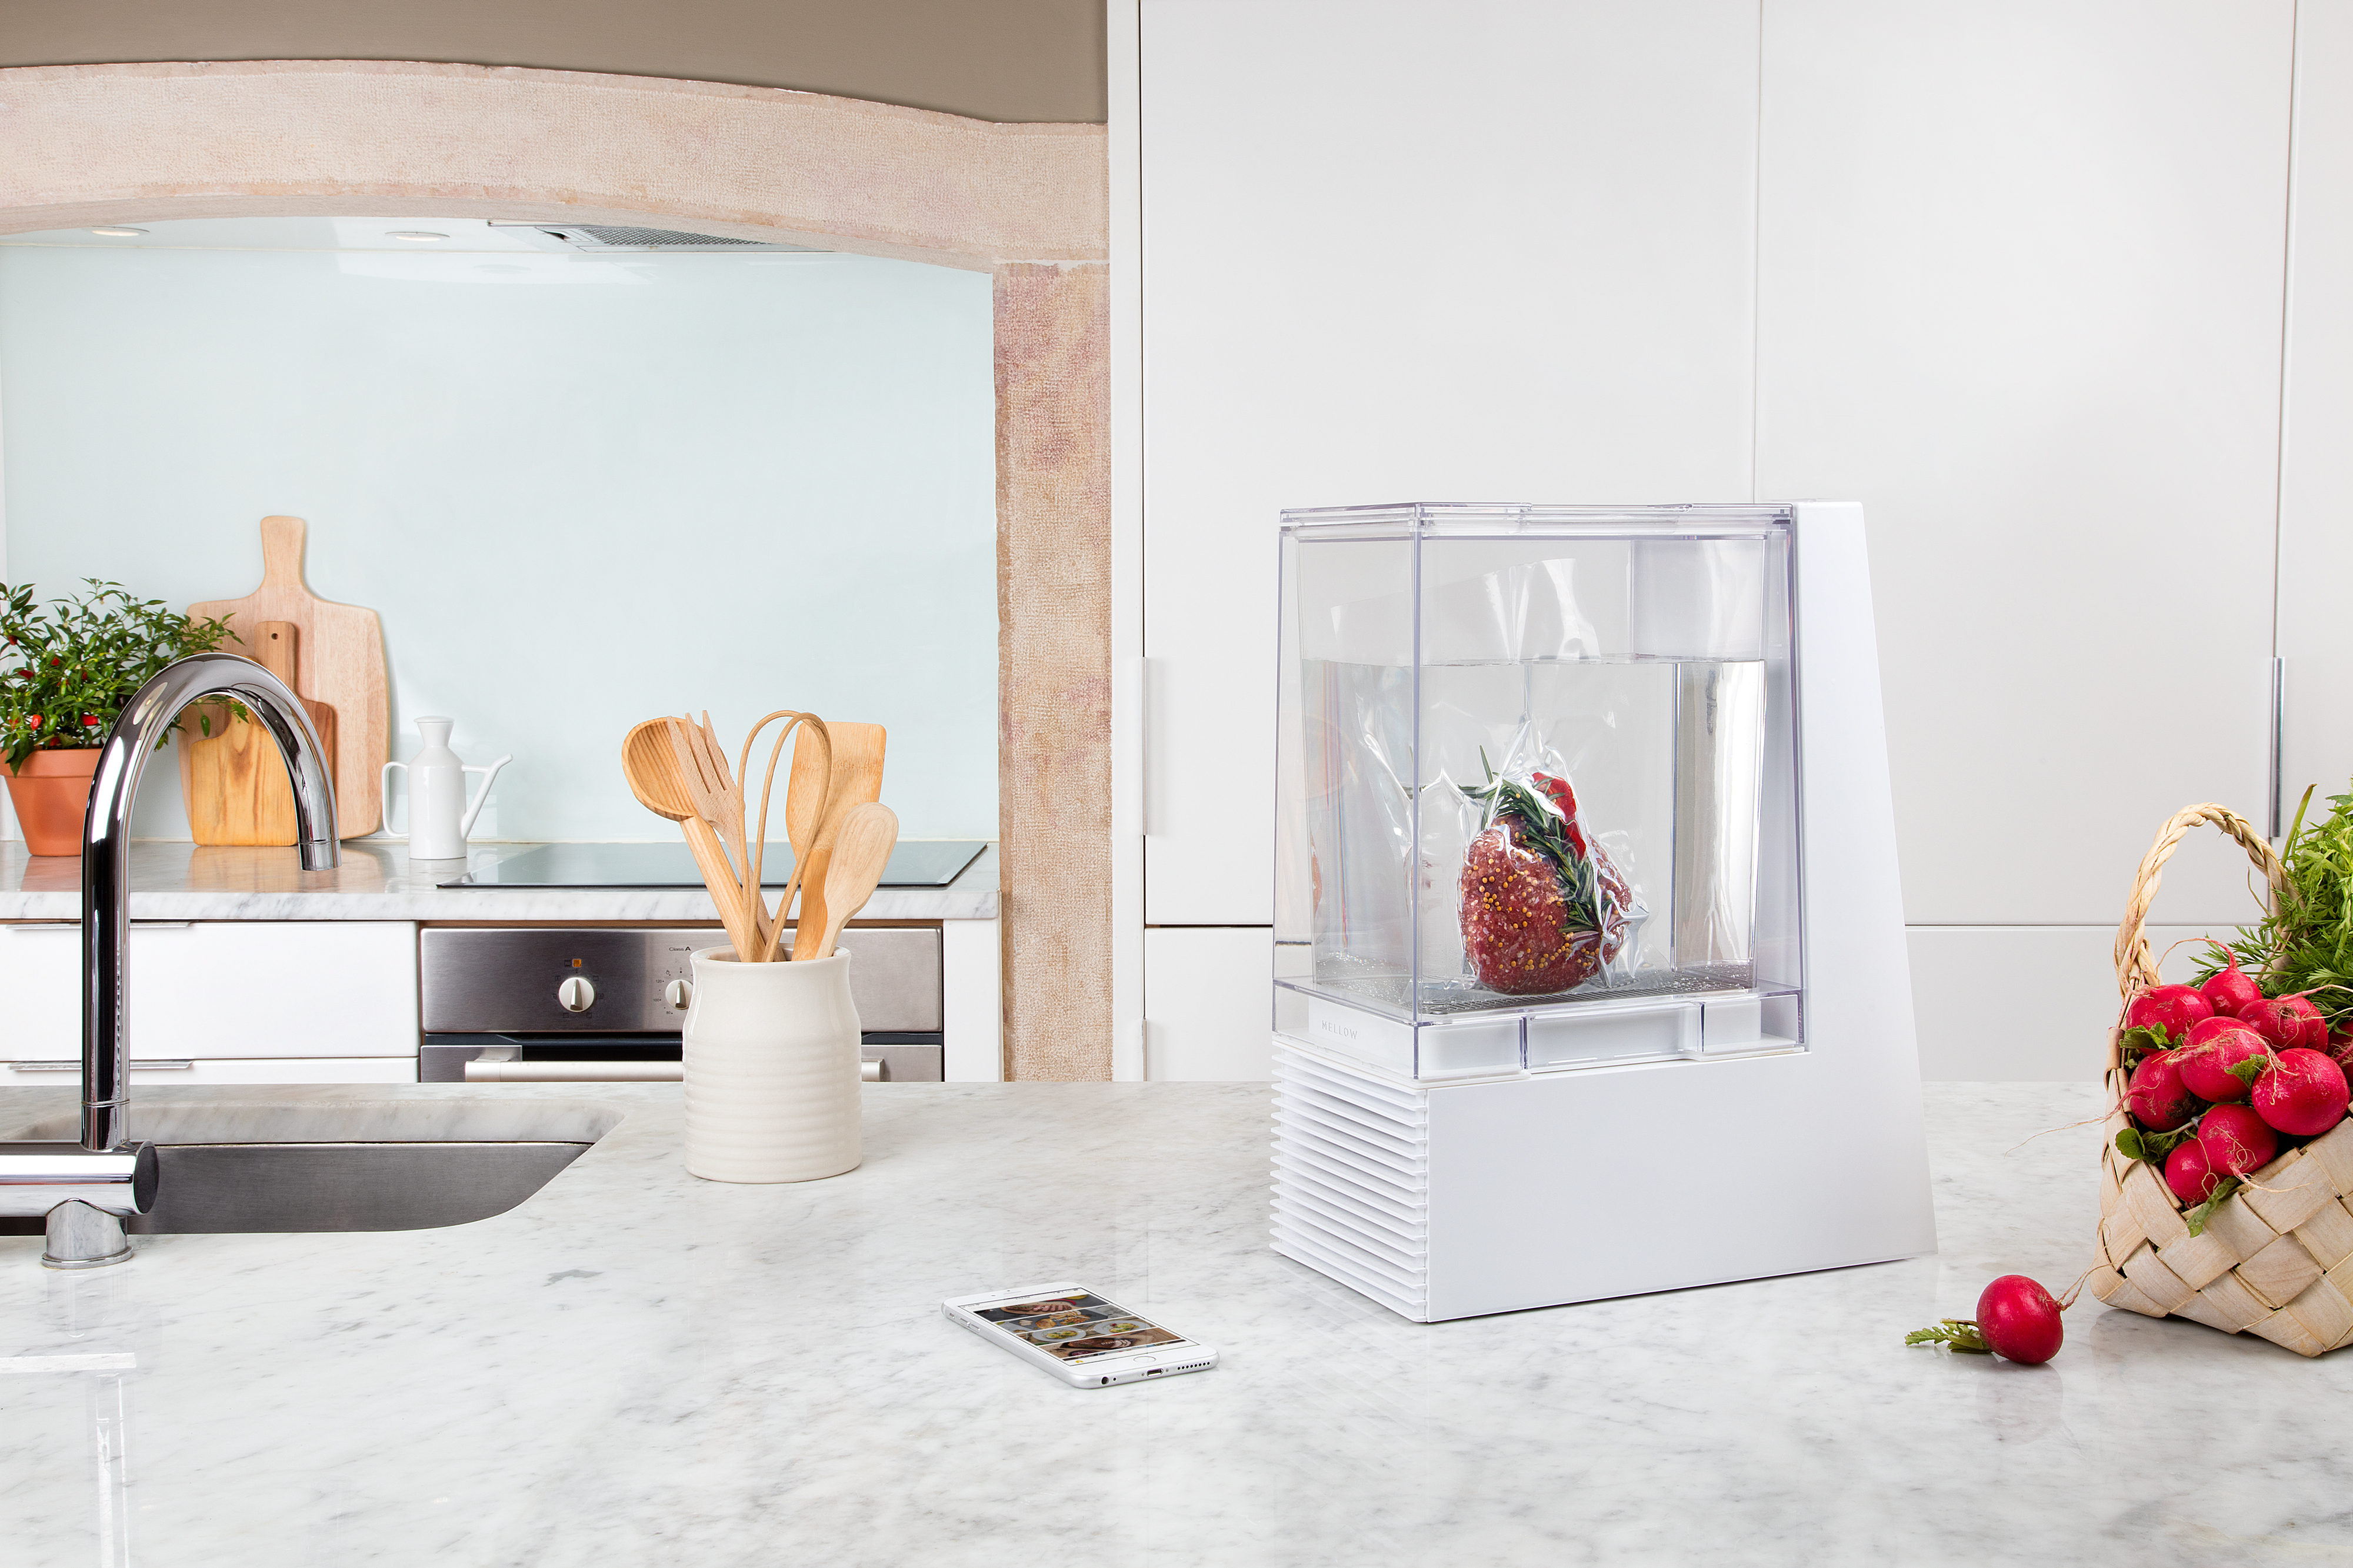 Dear Silicon Valley A Sous Vide Is Not Crockpot Ars Technica Tupperware Open House Oh Serving Enlarge Heres Press Photo Of The Mellow My Kitchen Nowhere Near This Nice So Lets Start With An Aspirational Image